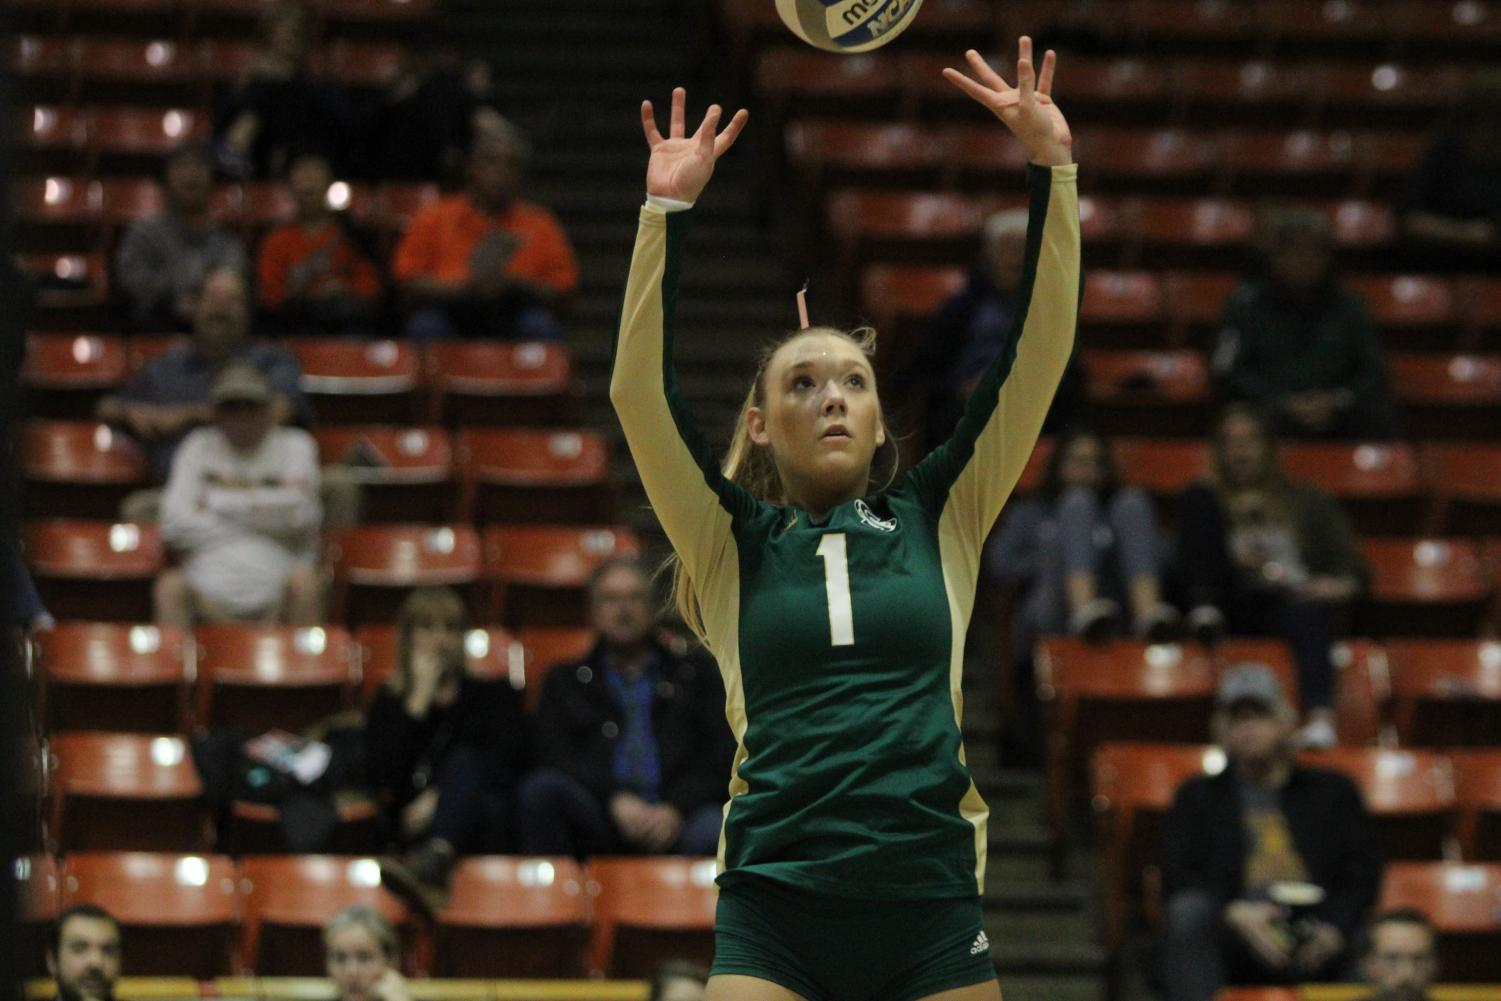 Sacramento State senior setter Kennedy Kurtz sets the ball against UC Irvine during the third set of a 3-0 loss in the National Invitational Volleyball Championship Tournament Tuesday, Nov. 28 in the Alex G. Spanos Center at the University of the Pacific.